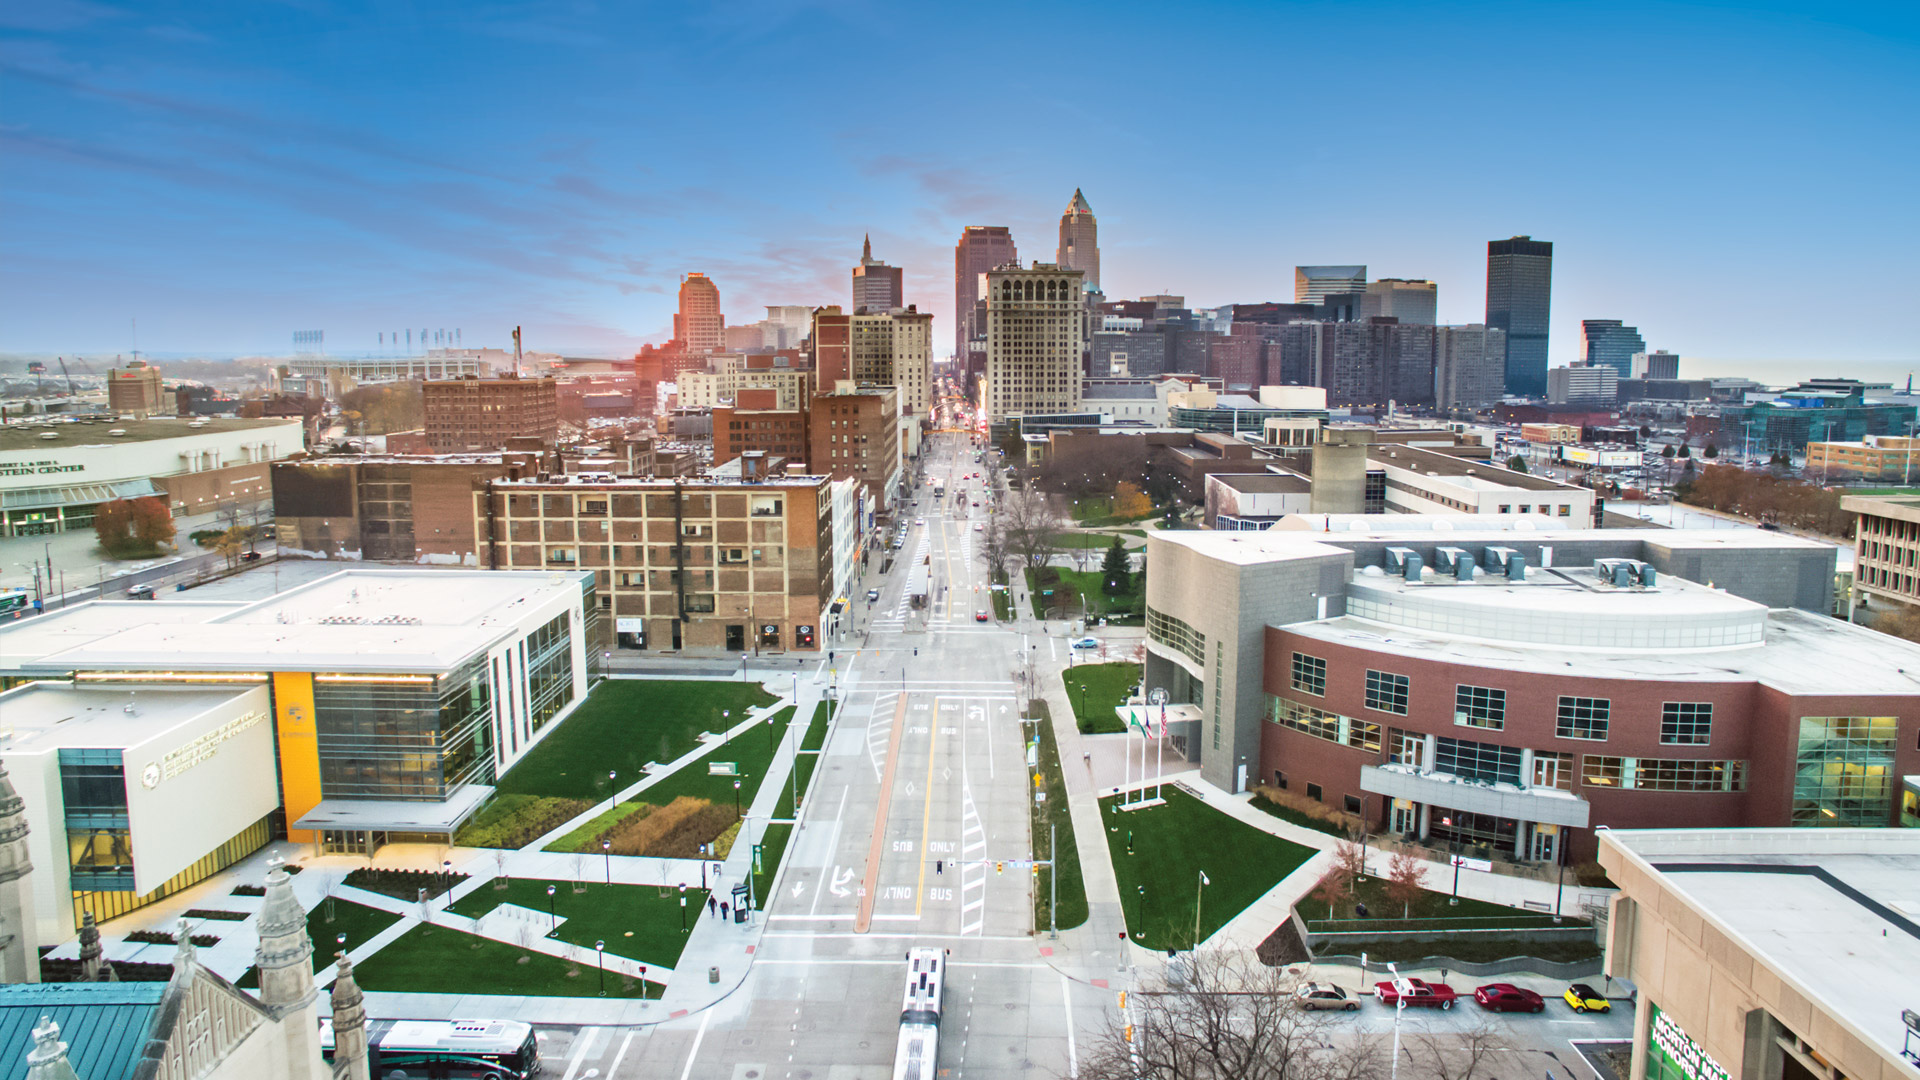 Ariel view of CSU campus in downtown Cleveland